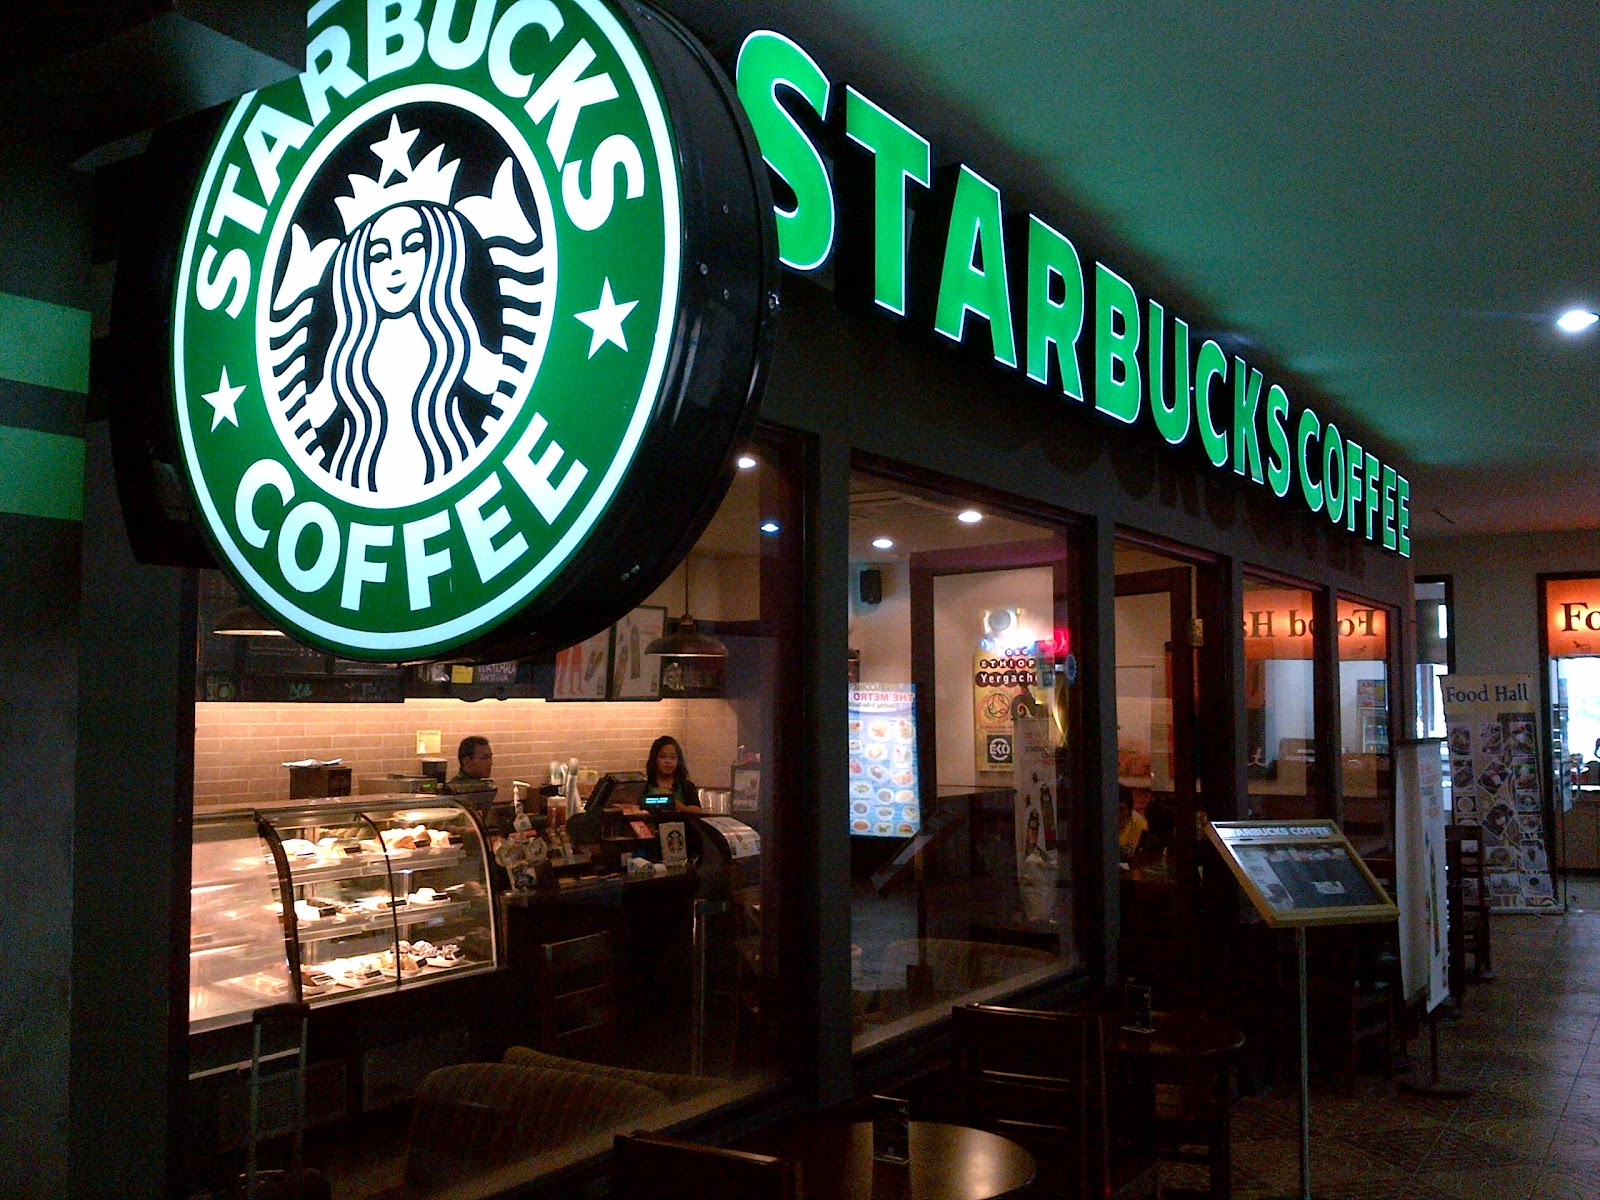 http://panamericanworld.com/sites/default/files/starbucks-coffee-medan-polonia-airport.jpg